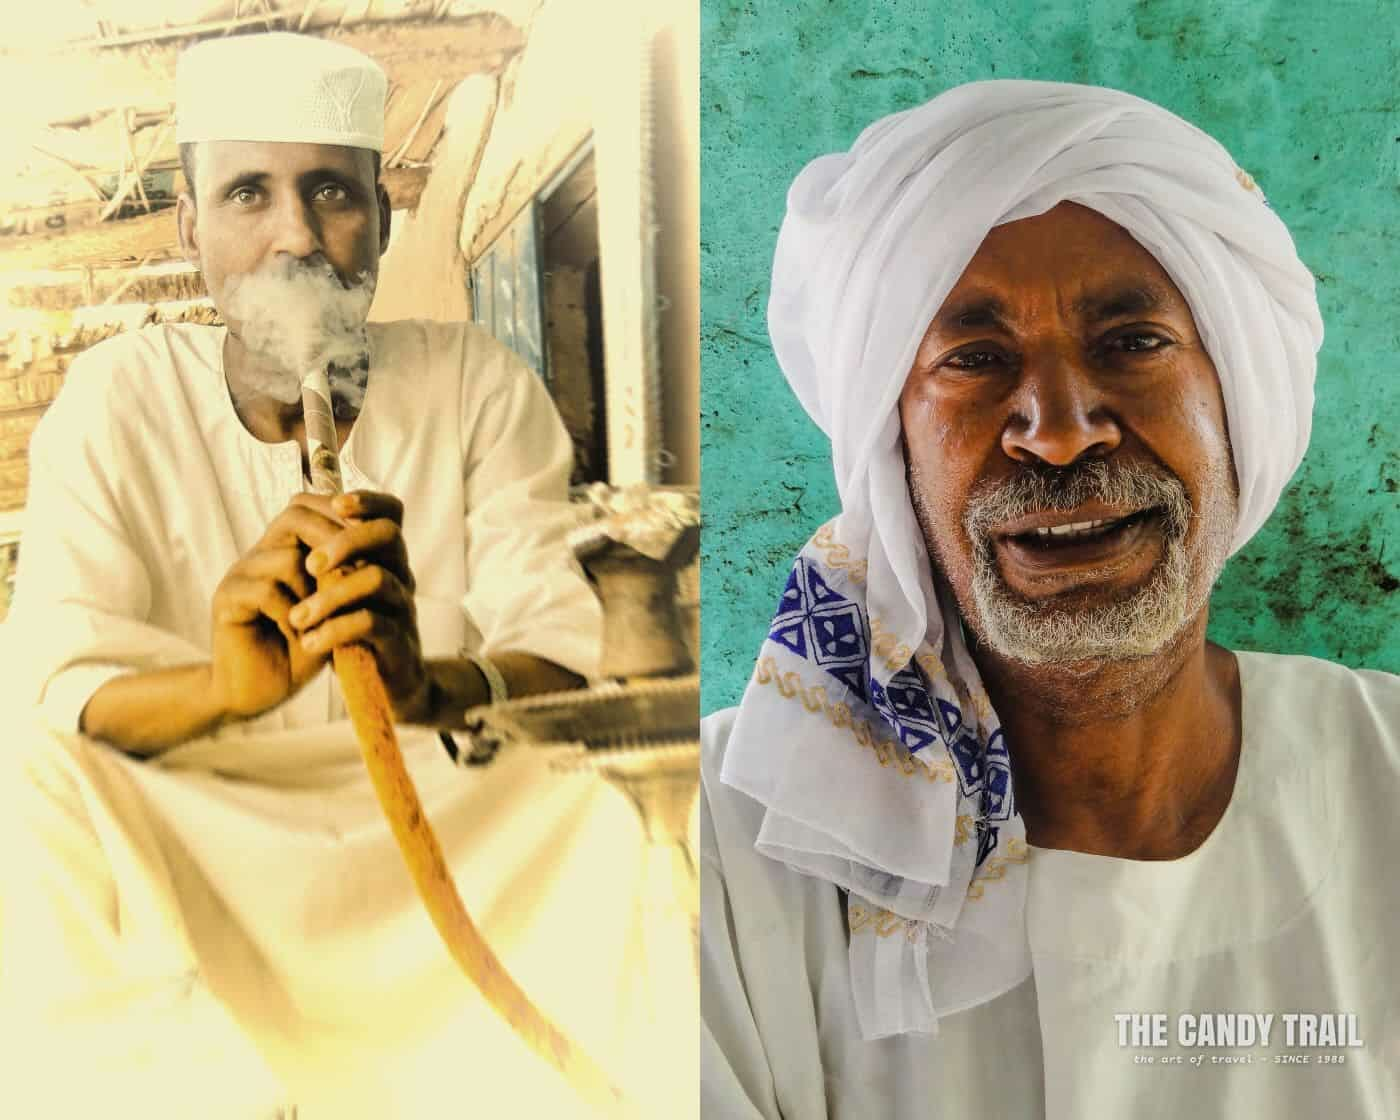 traditional-men-smoking shesha-sudan